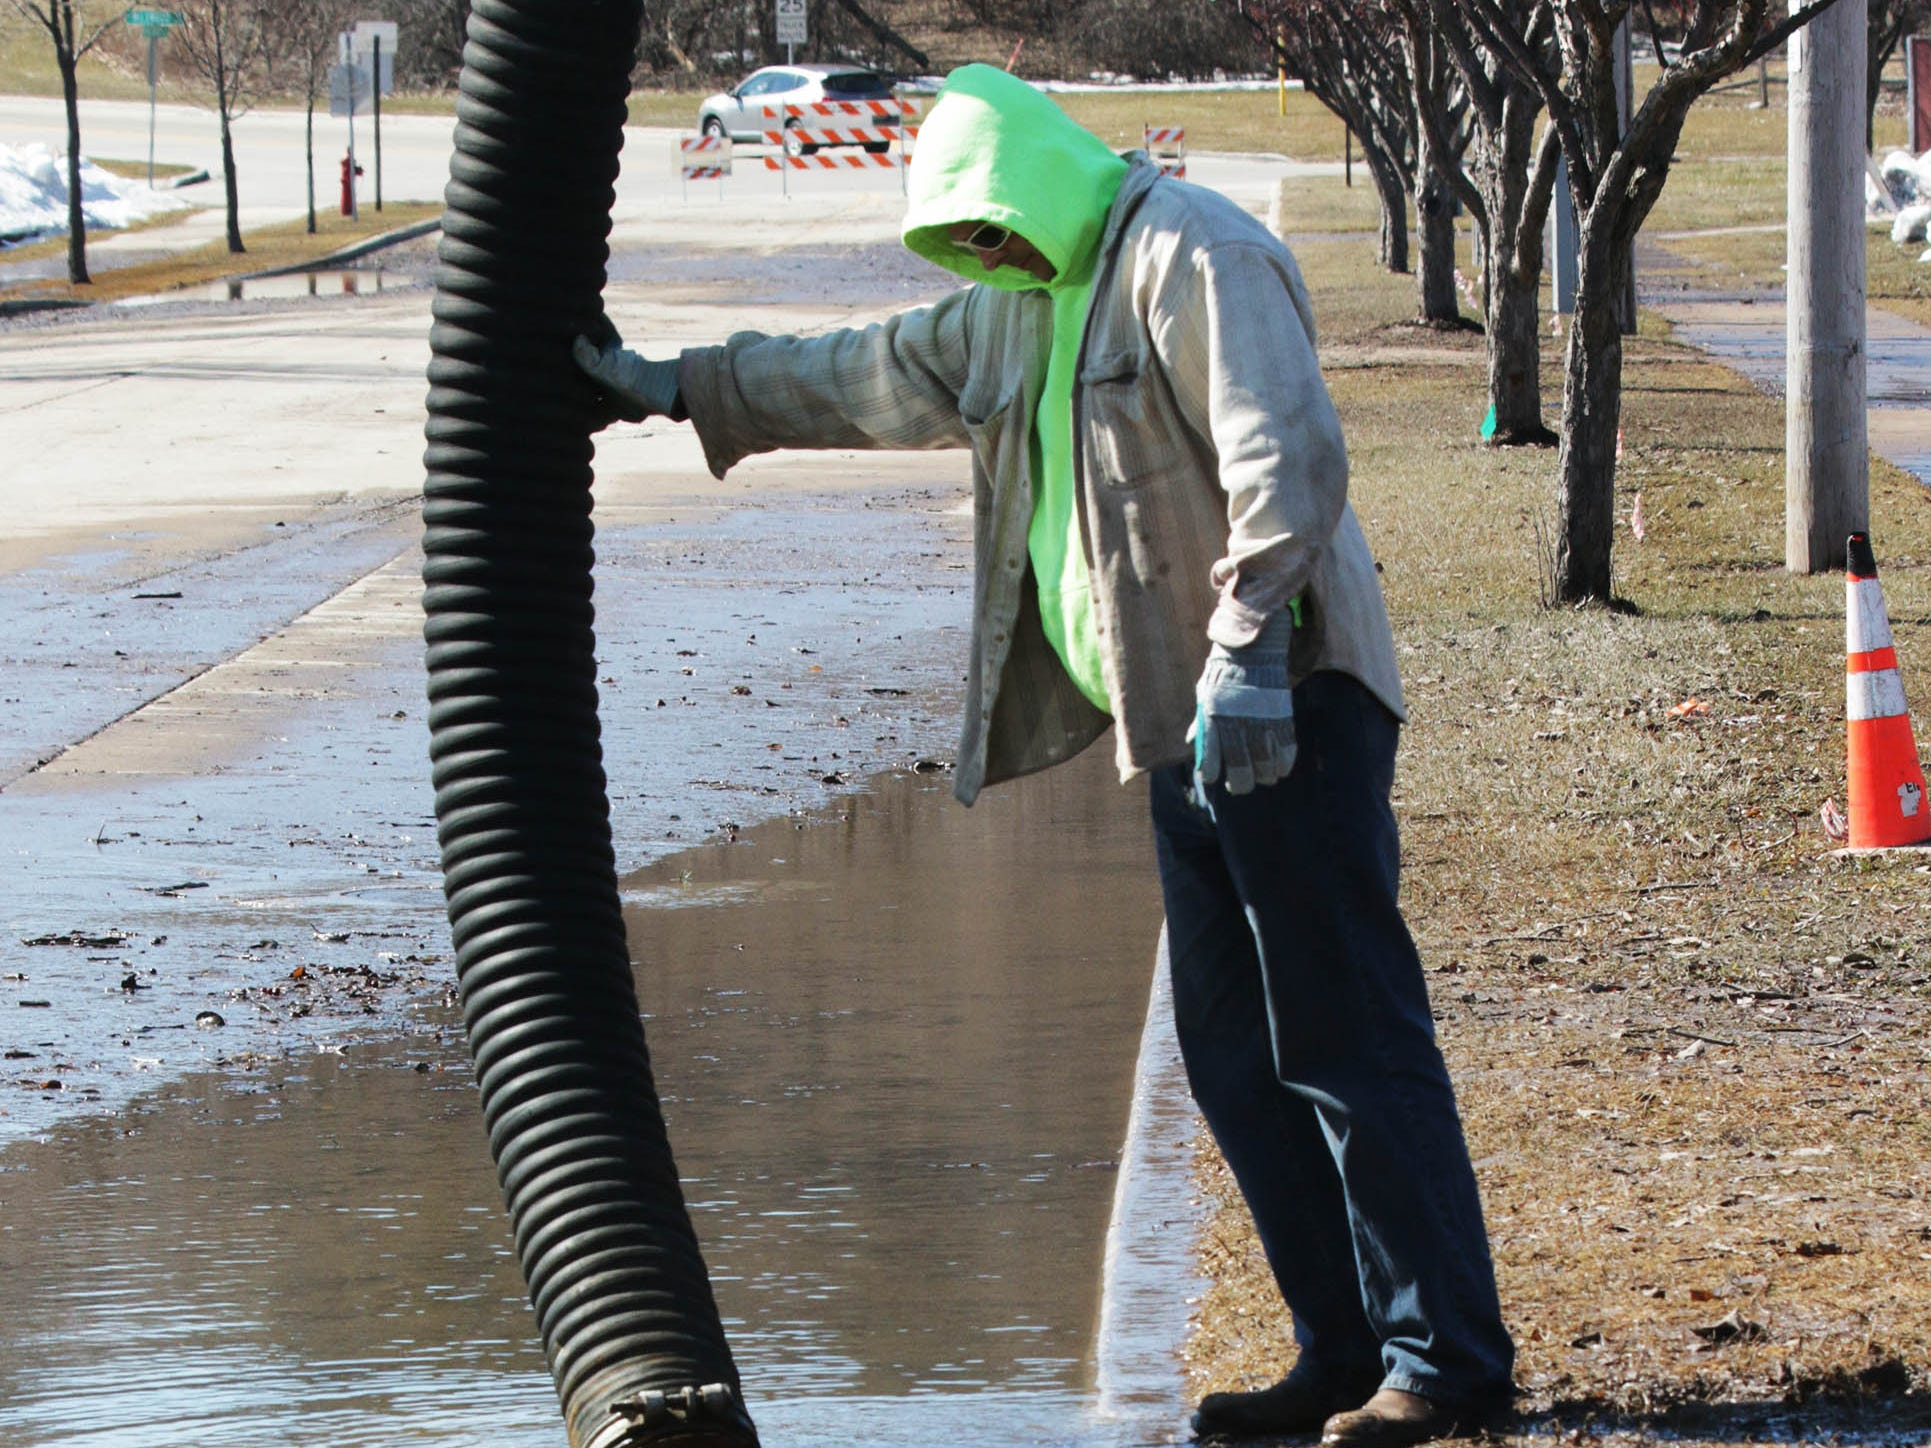 Department of Public works employee Ken Meinert is reflected with the suction pipe of a sewer jet, Tuesday, March 19, 2019, in Sheboygan, Wis. A city employee said they are hoping to have the street open in the next day.